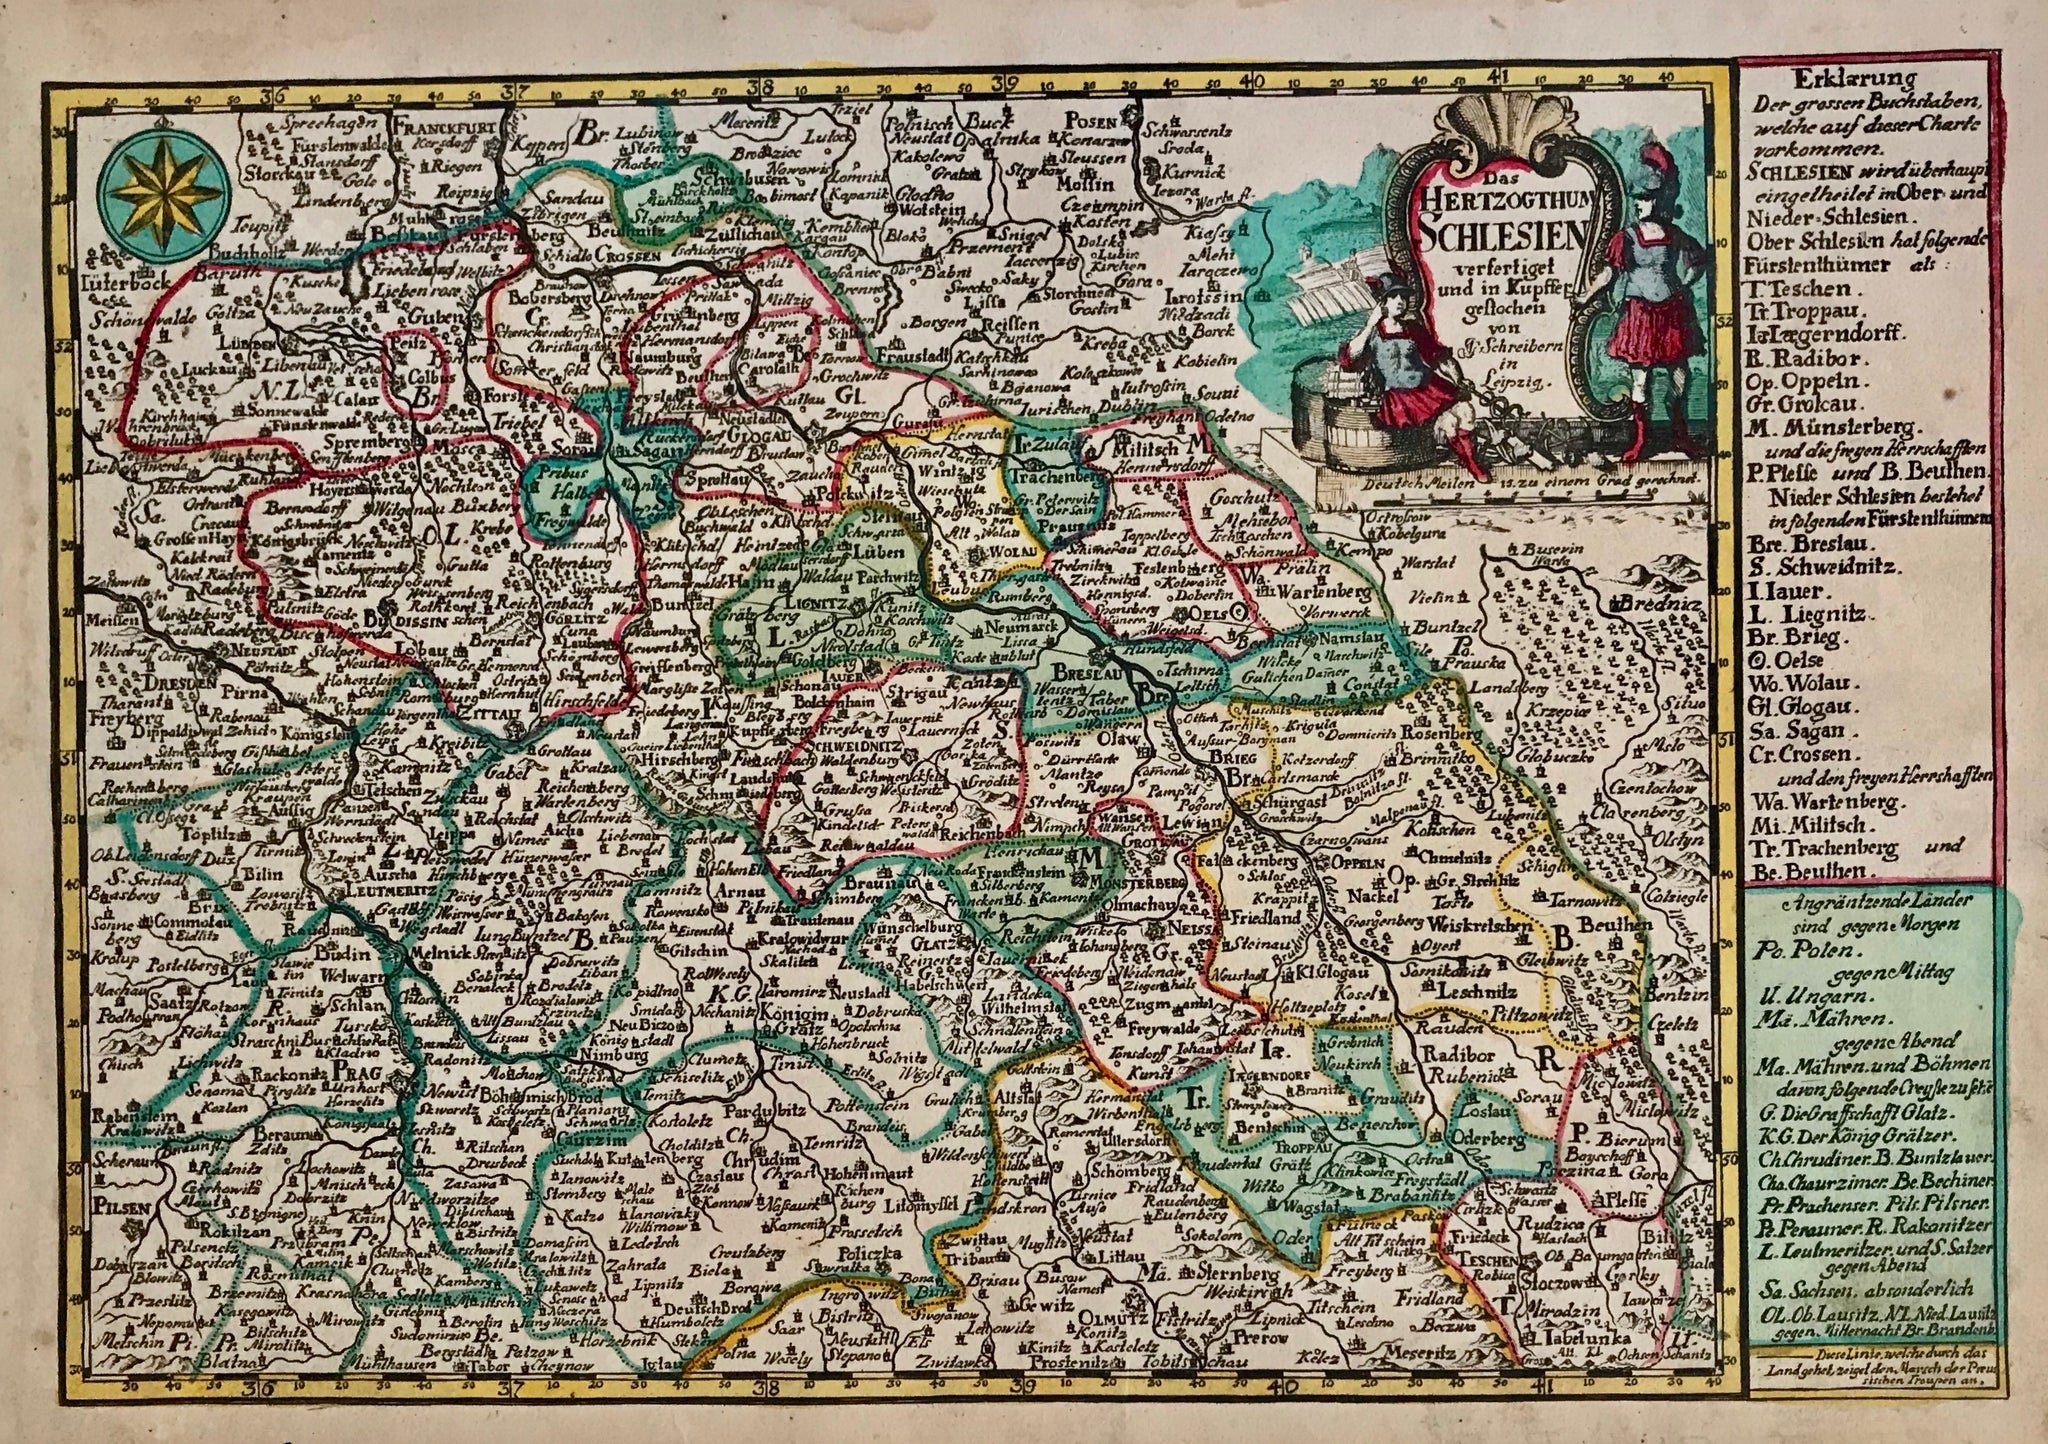 """Das Herzogthum Schlesien......"". Copper etching by Johann Christian Schreibern(1676-1746). His atlas was published after his death ca. 1750 in Leipzig. Original hand coloring.  This map features the region of Silesia and the surrounding area. It reaches as far west to include Dresden and Pilsen on the left side and Pless and Bilitz in the southeast. In the far south is Iglau. On the right side of the map is an explanation of the various areas."